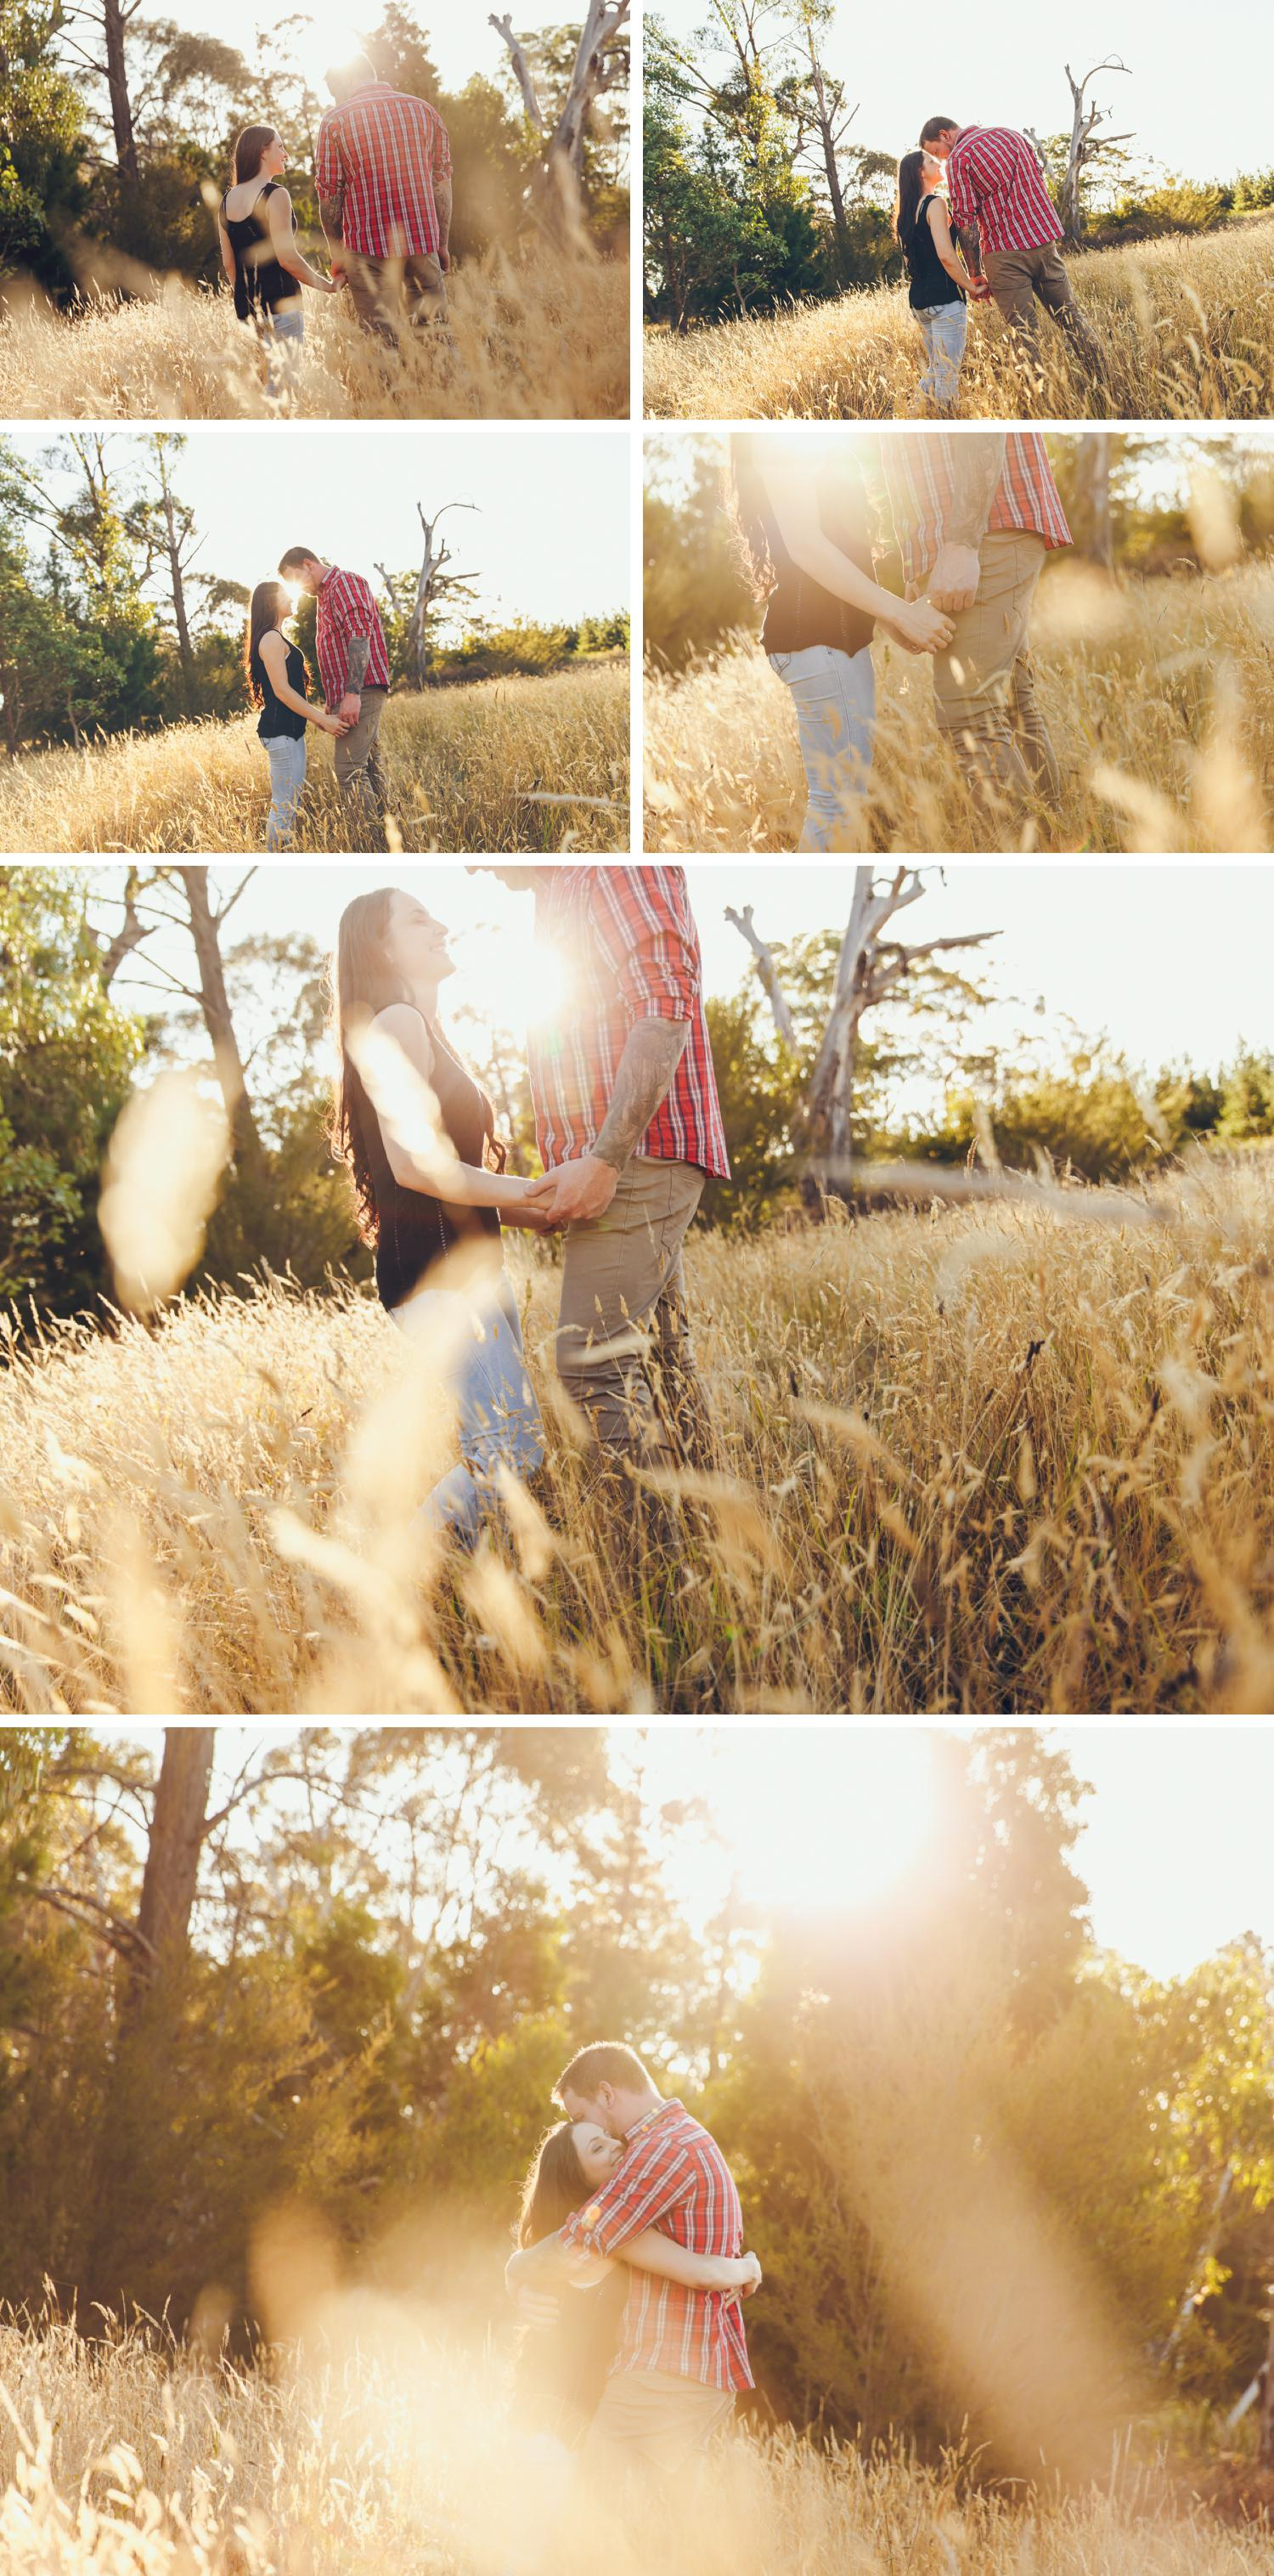 Gippsland Pine Plantation Engagement Shoot, Beautiful Field Engagement Shoot Couple Embracing by Danae Studios